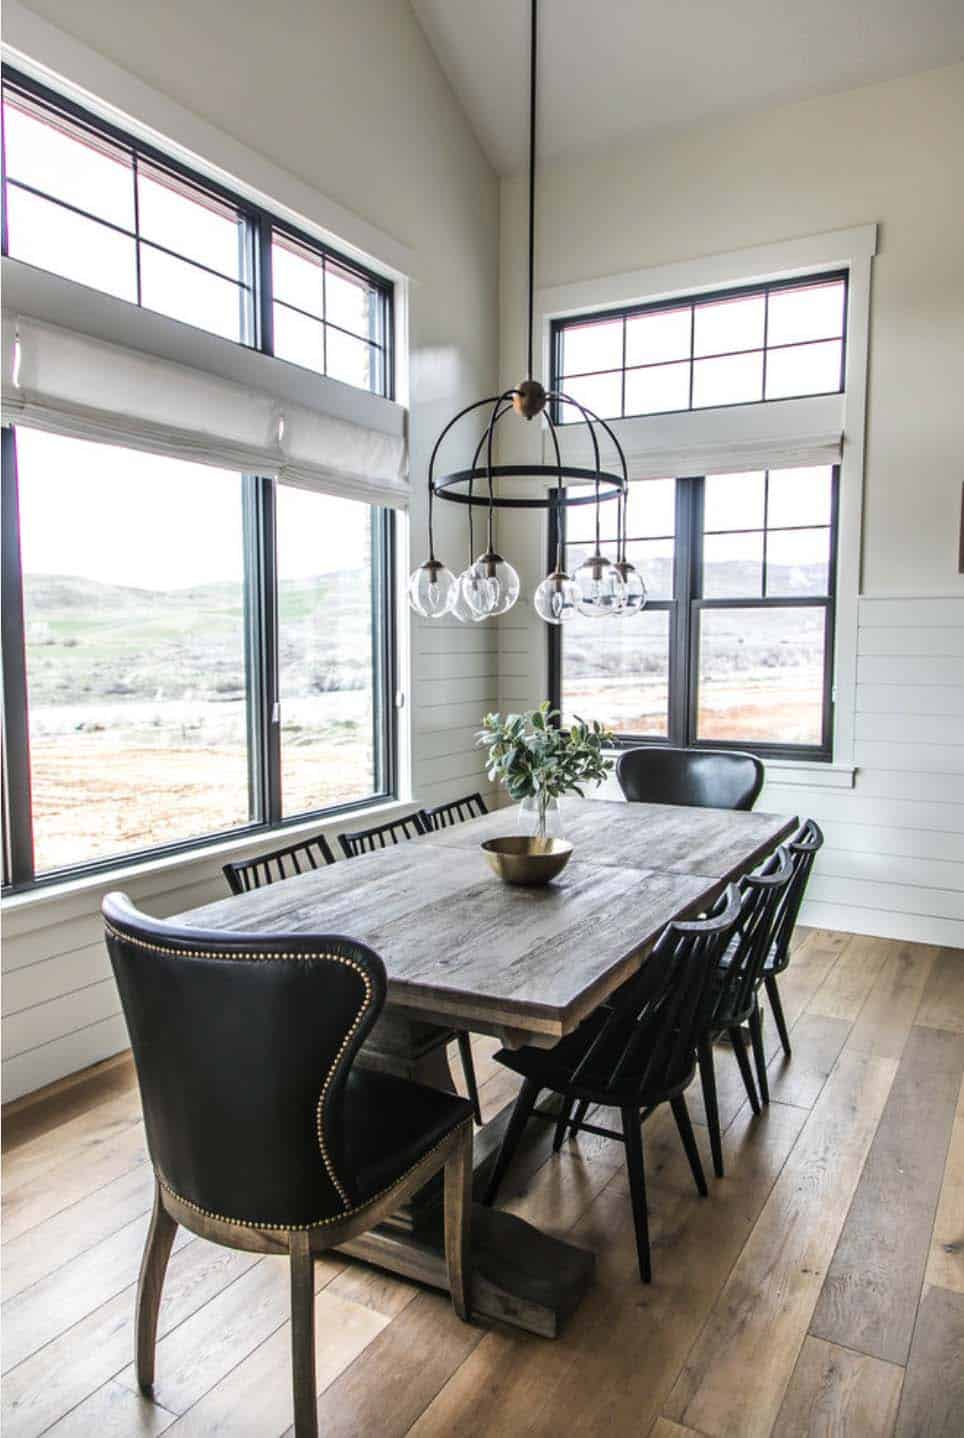 Modern farmhouse style in Utah features stylish living spaces